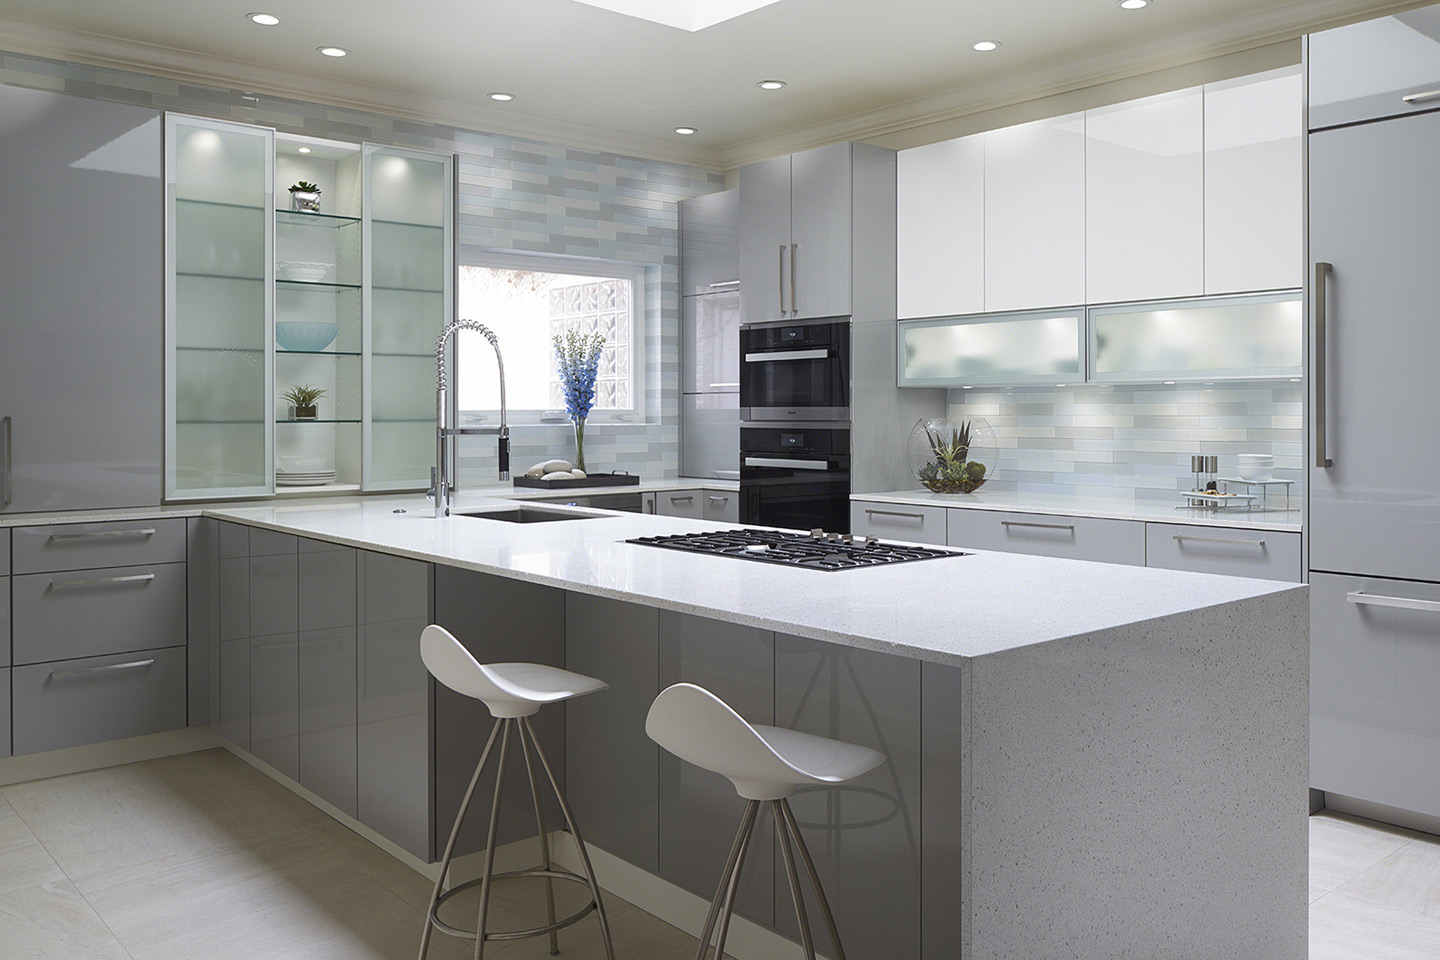 High gloss contemporary cabinets for this Norman remodel with aluminum frosted glass doors and integrated led lighting.